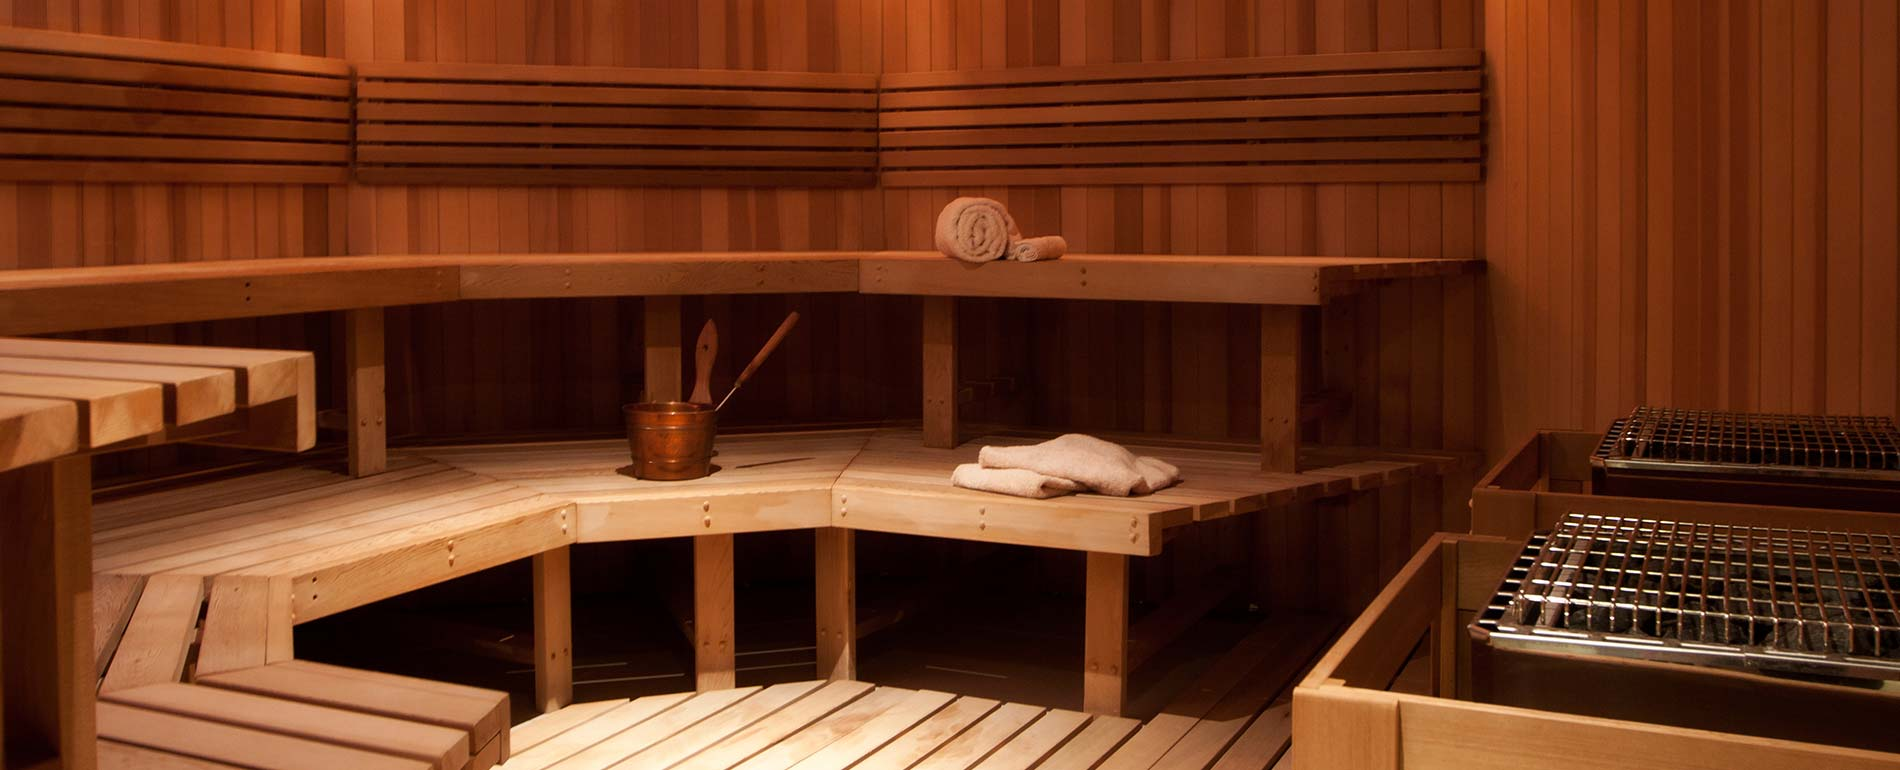 Pocono Spa sauna room